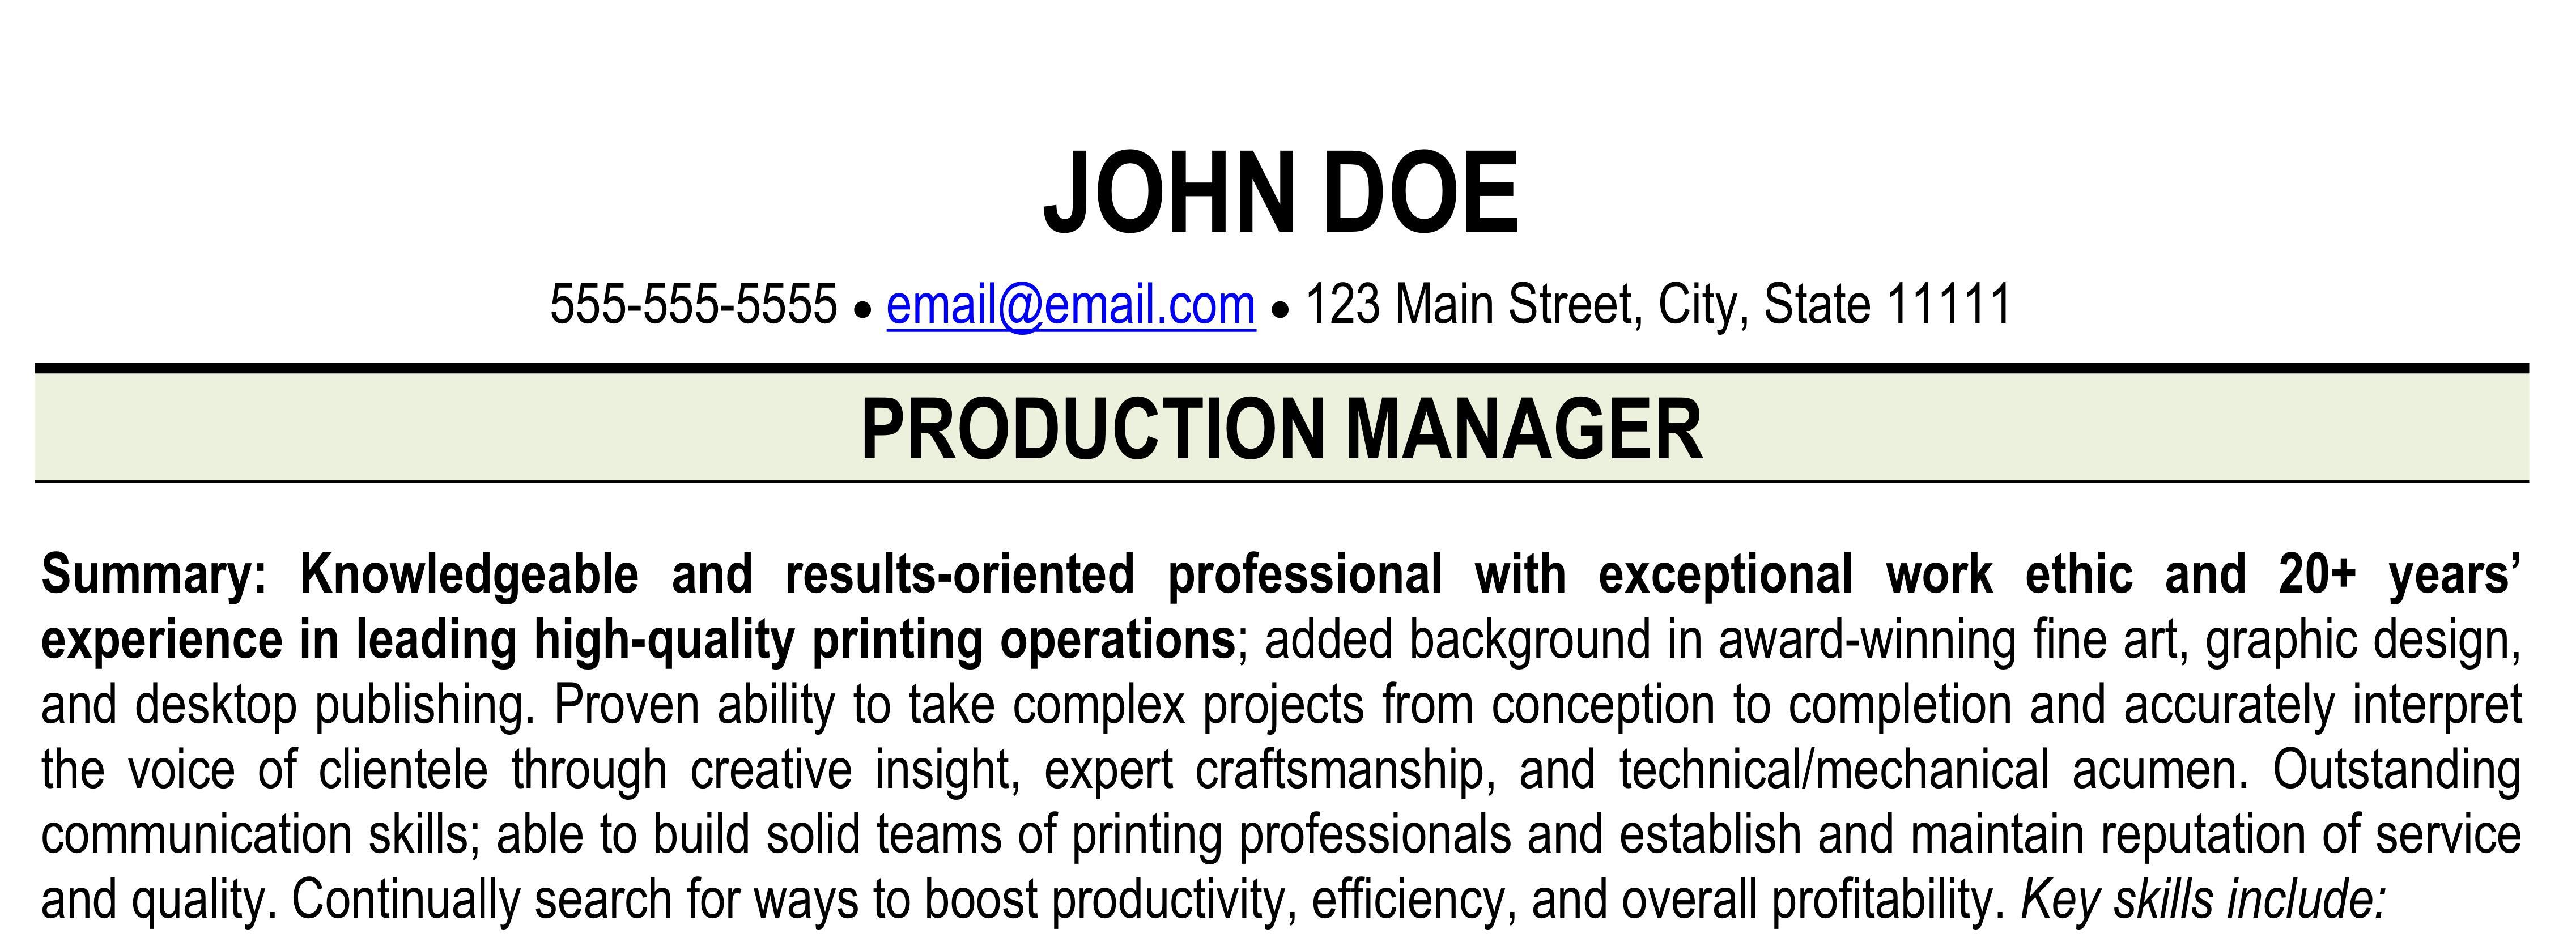 Print production manager resume example with title and summary